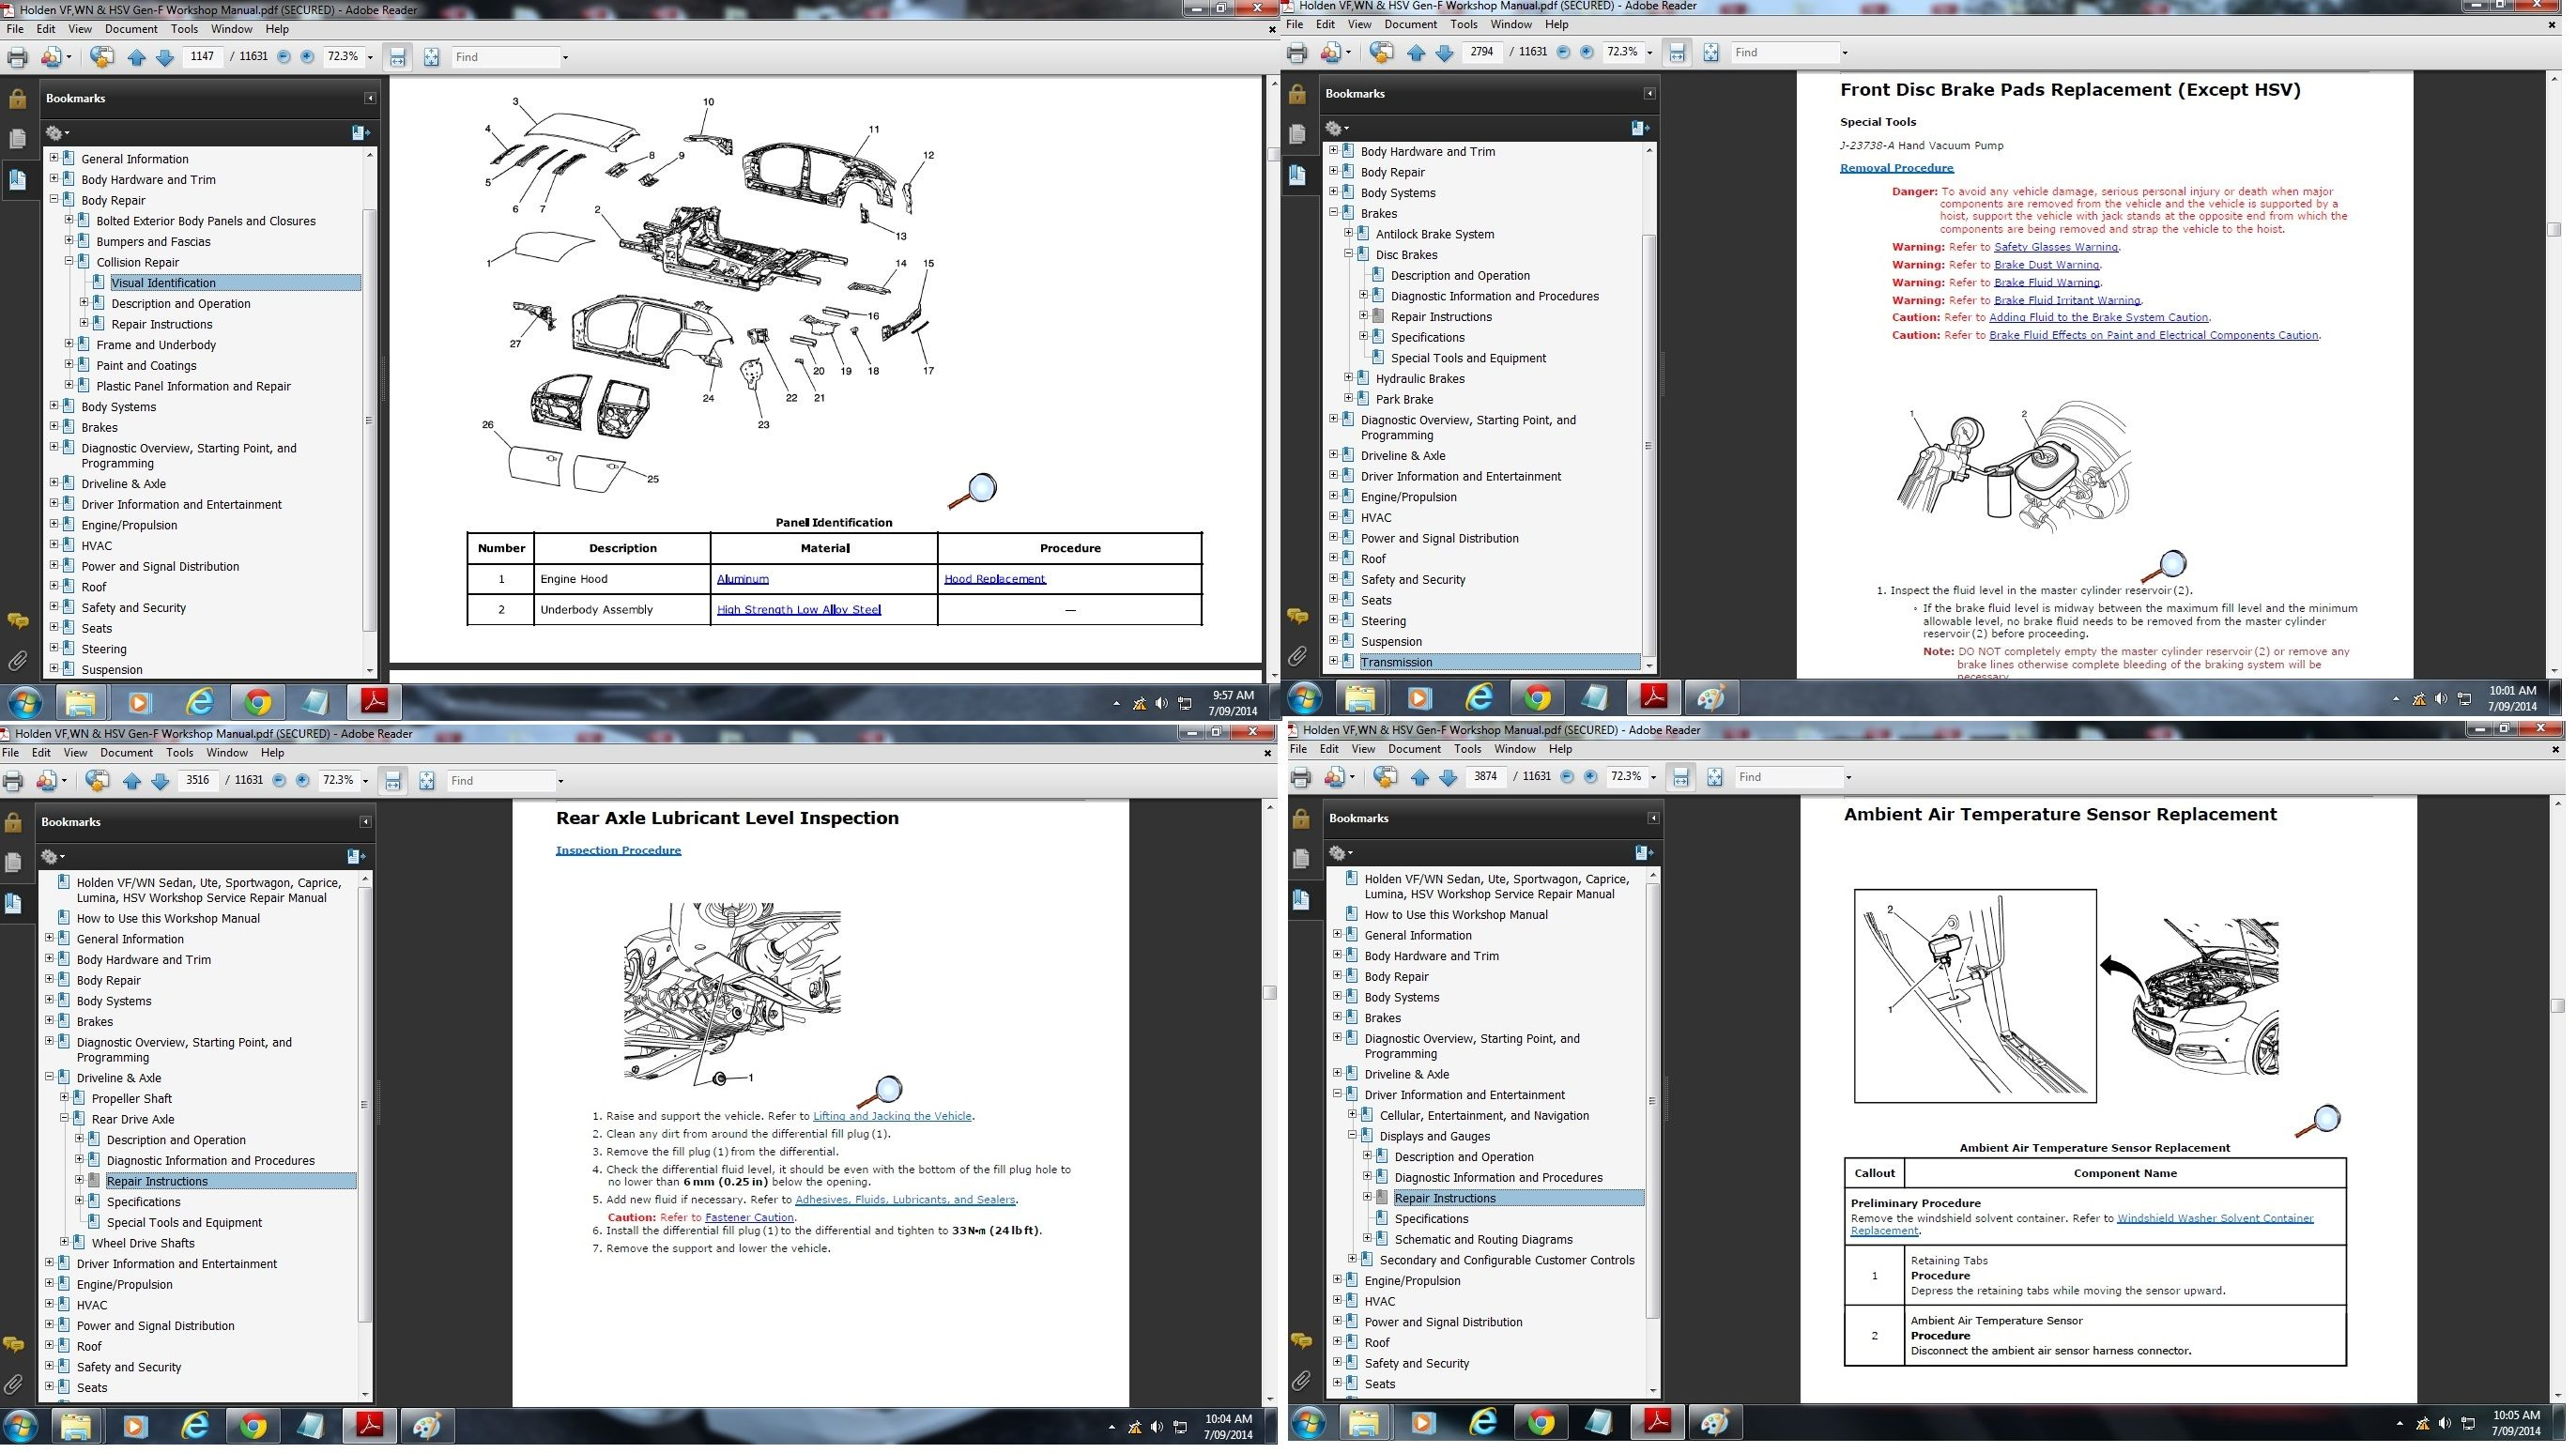 preview pages of holden vf wn sedan ute sportwagon caprice hsv workshop manual [ 2744 x 1548 Pixel ]